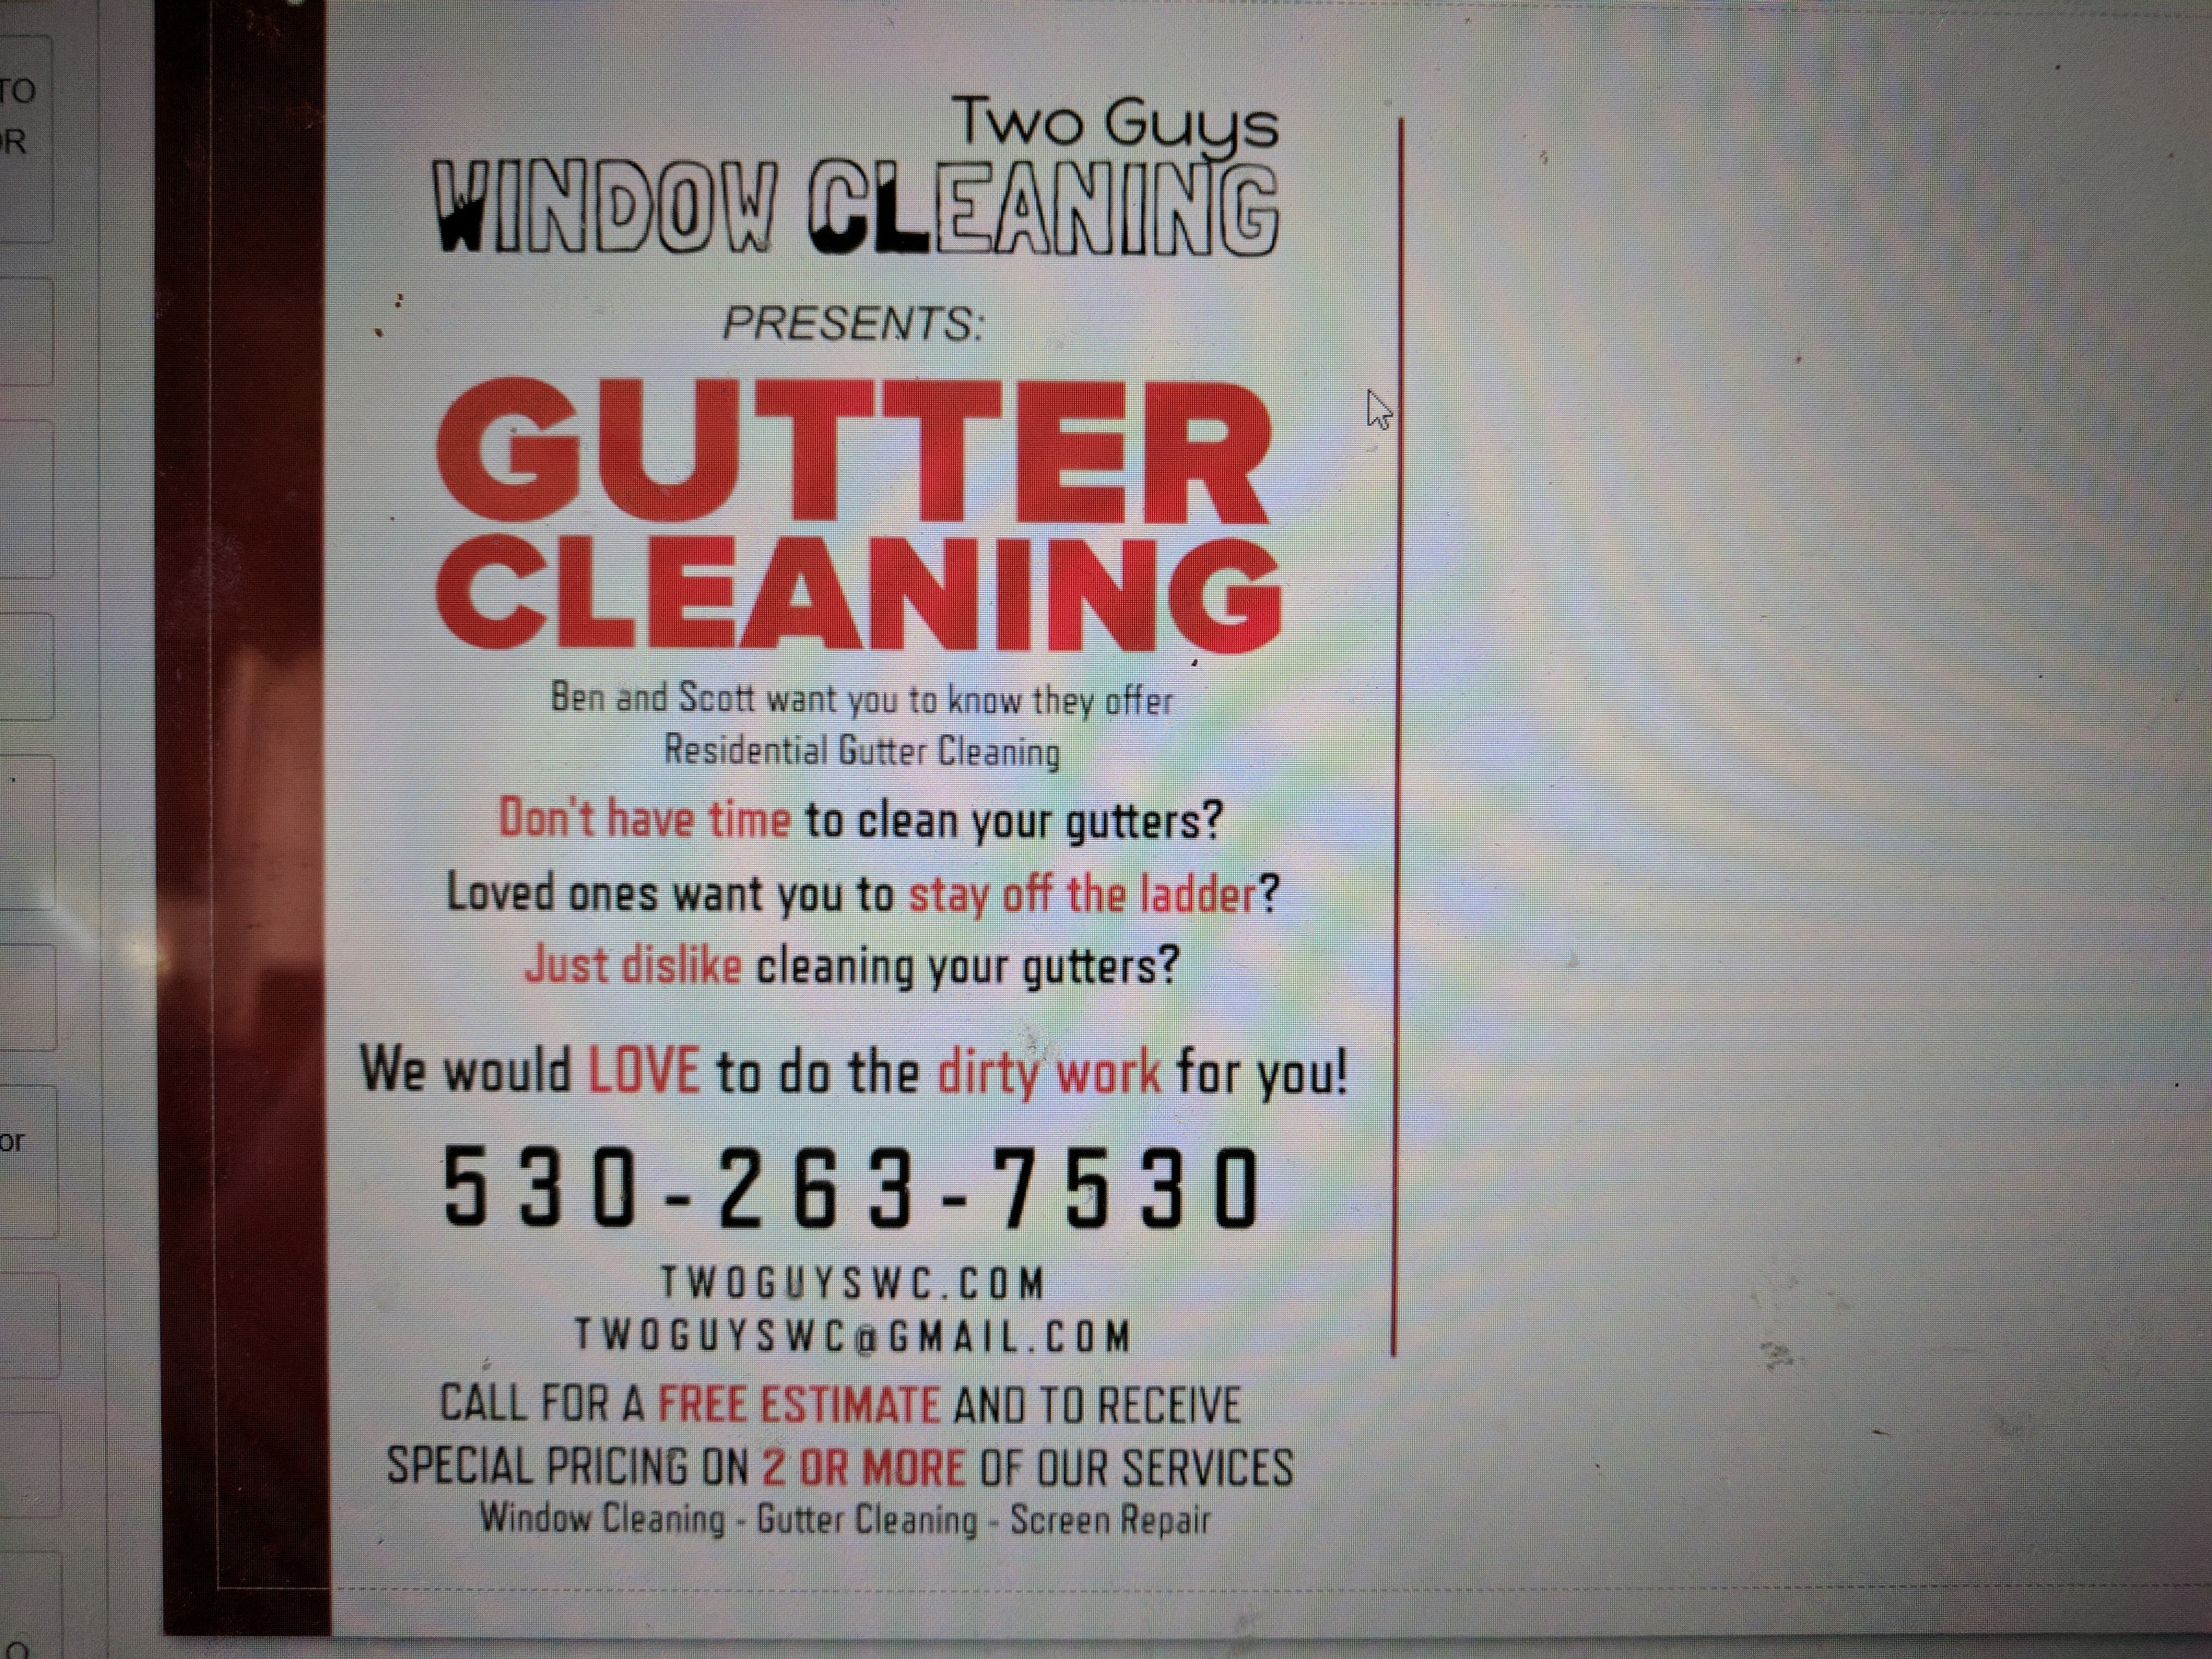 Gutter Cleaning Flyer Design Marketing Window Cleaning